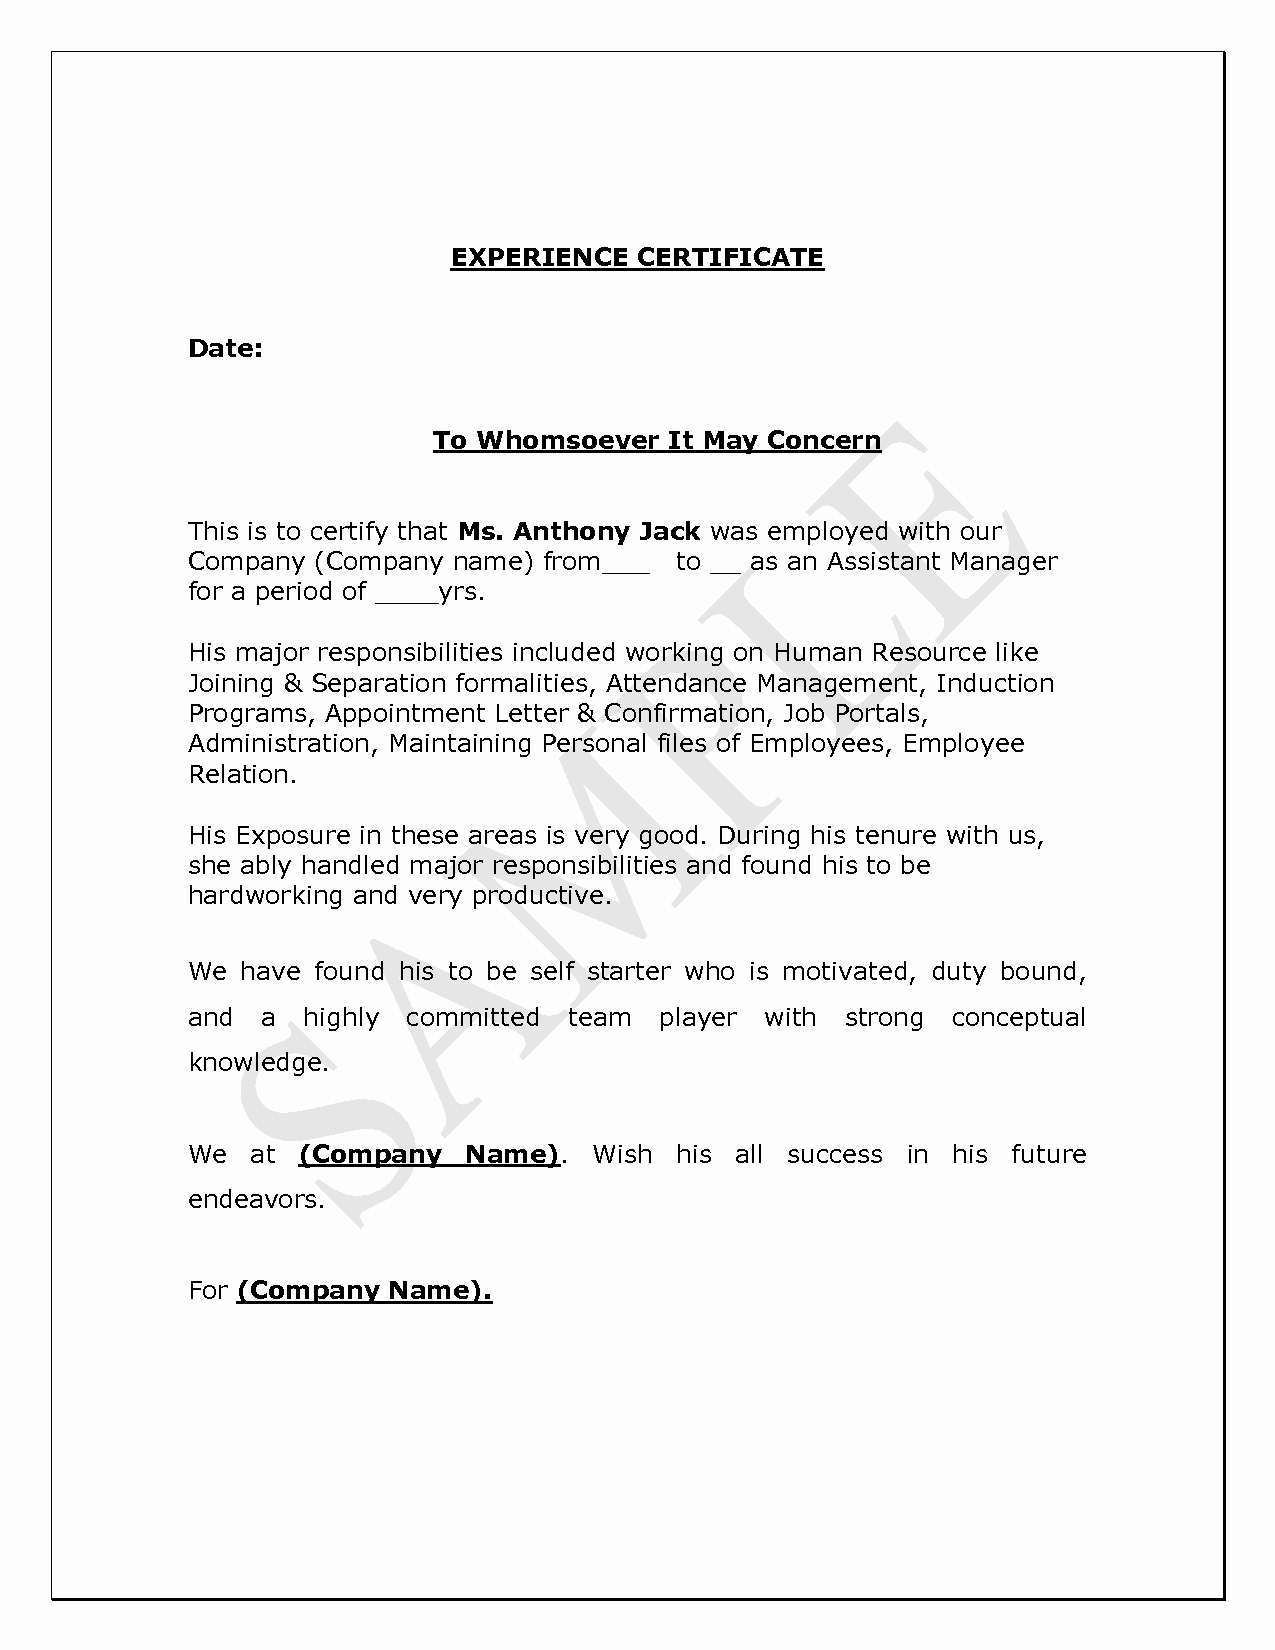 I140 Experience Letter format Fresh Teaching Experience Certificate format Doc Lawteched